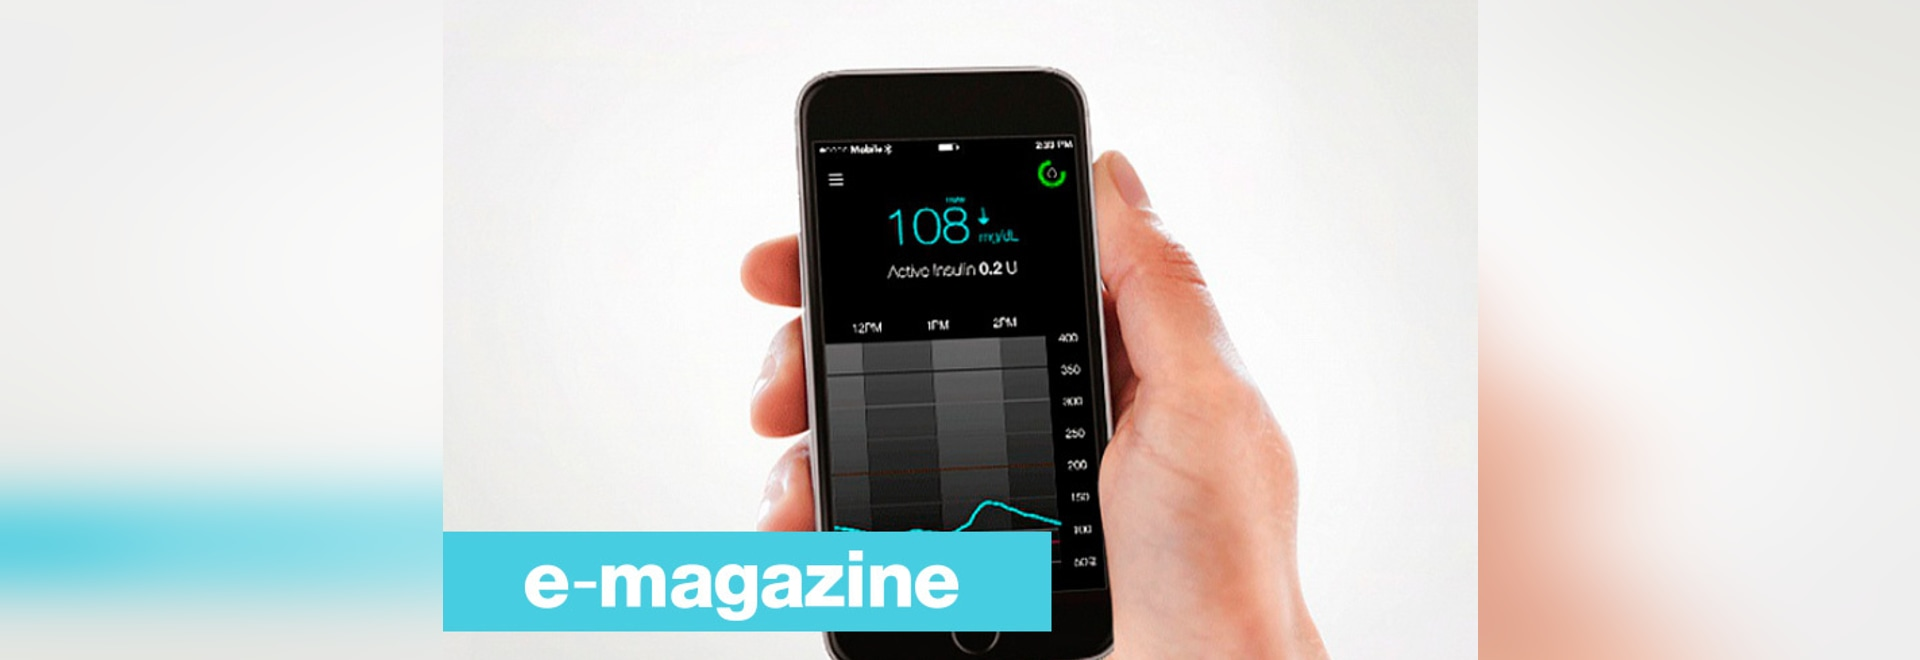 Patient's diabetes data directly viewable on a smartphone